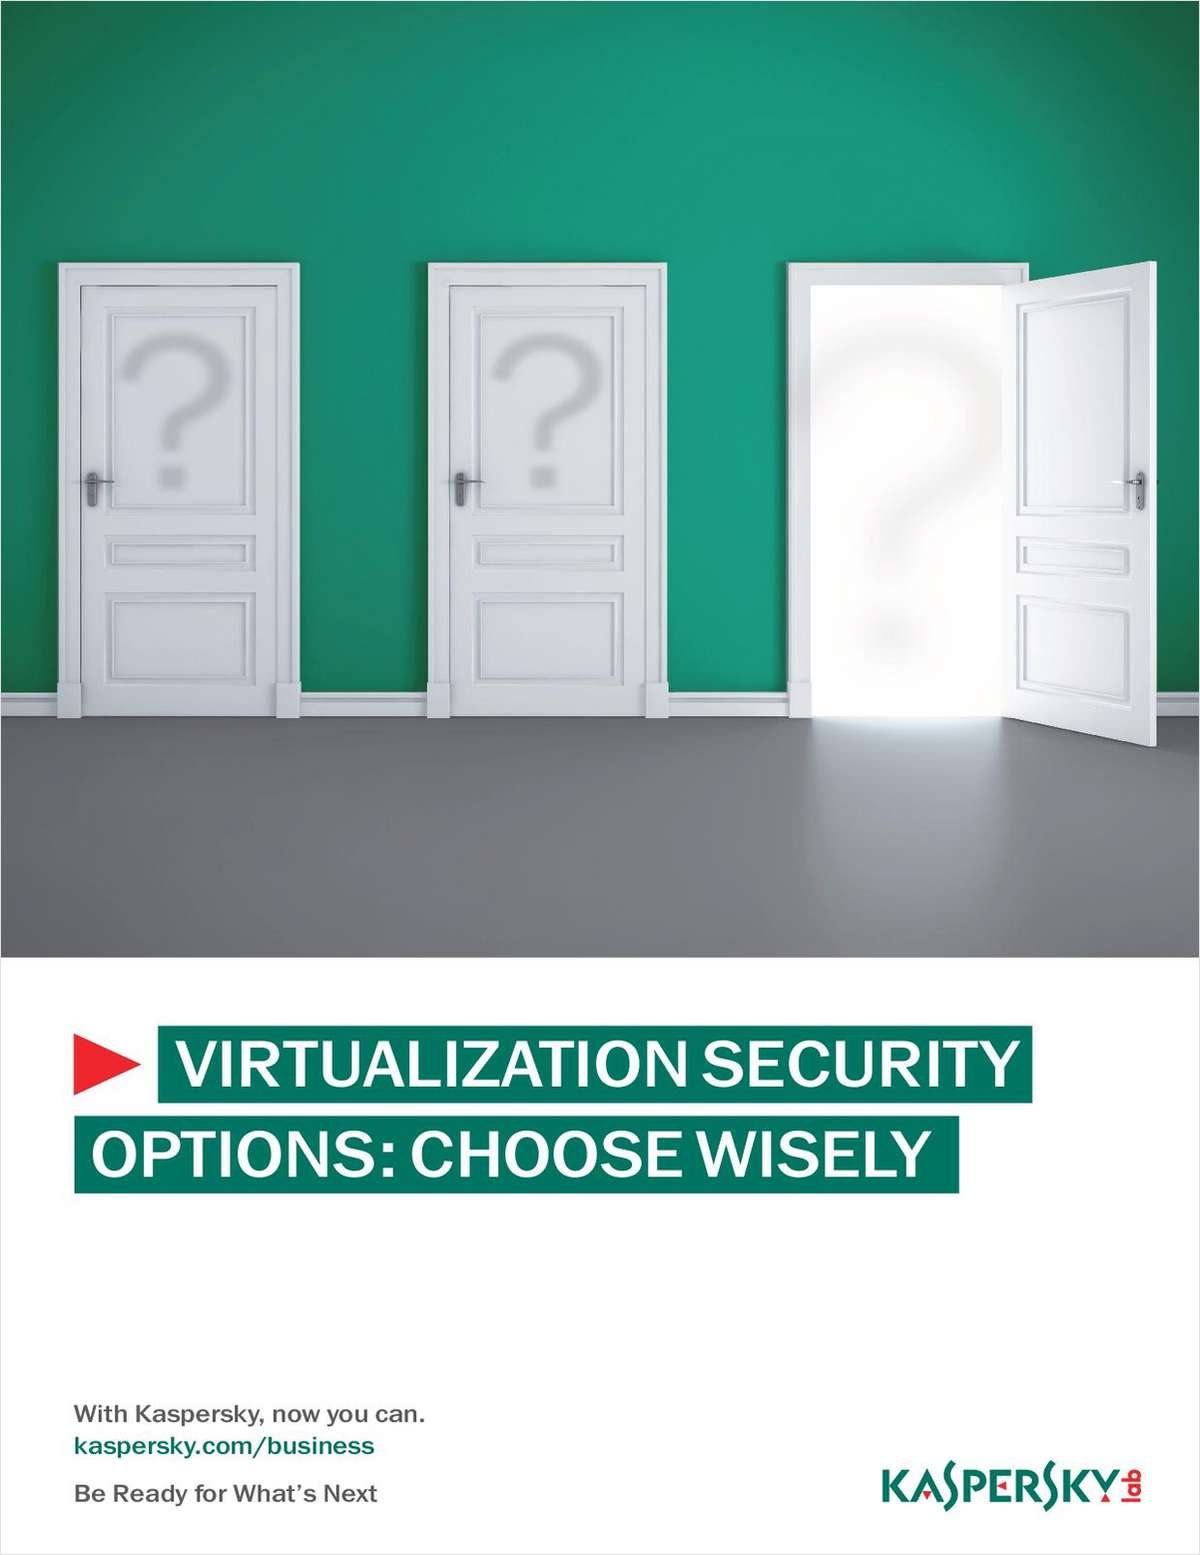 Virtualization Security Options: Choose Wisely